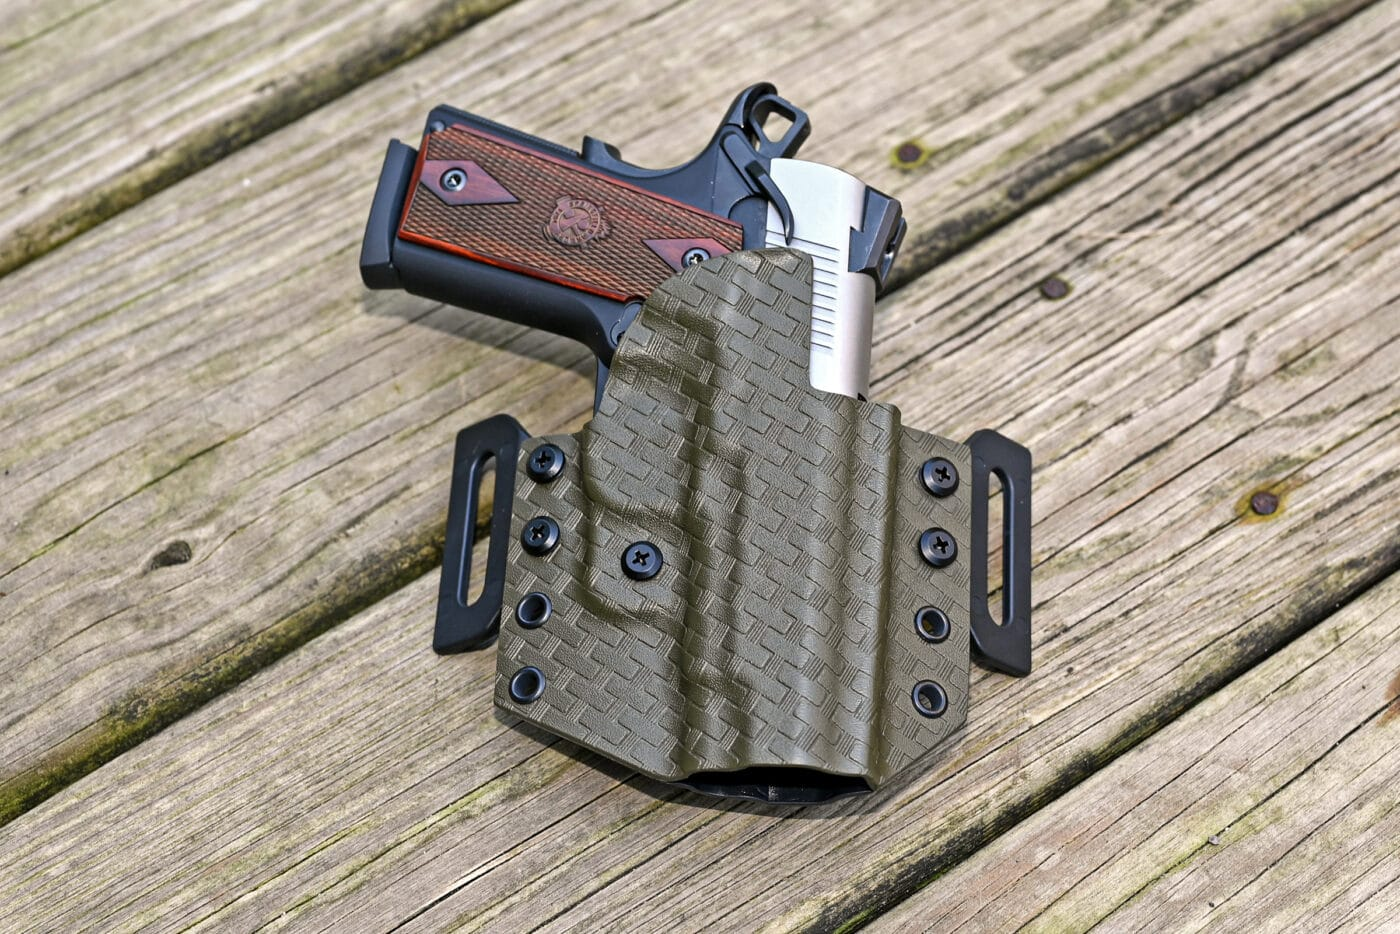 Upper Hand CCW holster with EMP pistol in it